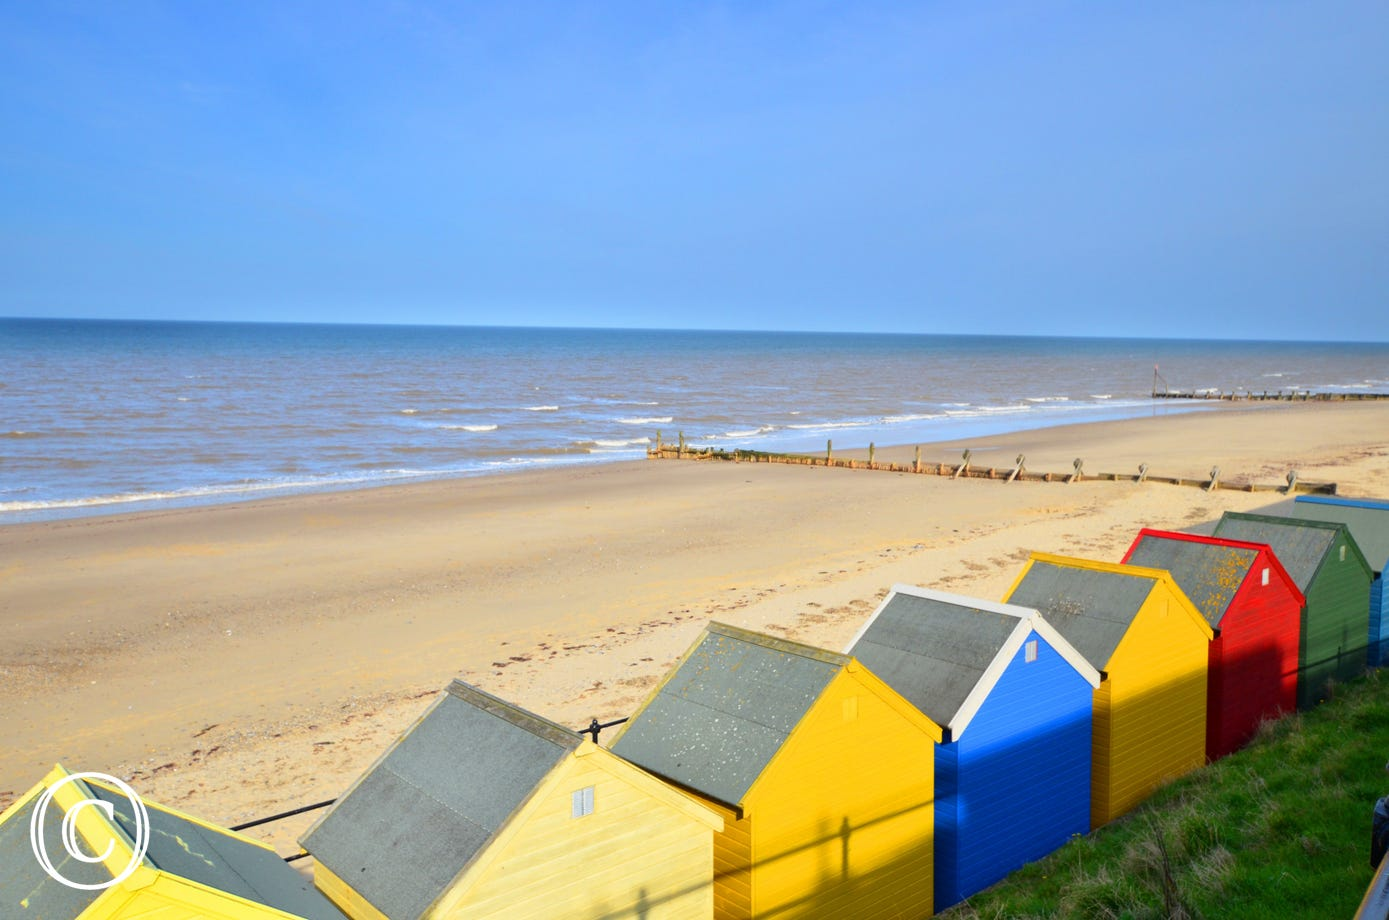 The sandy beach at Mundesley is only 2 miles away